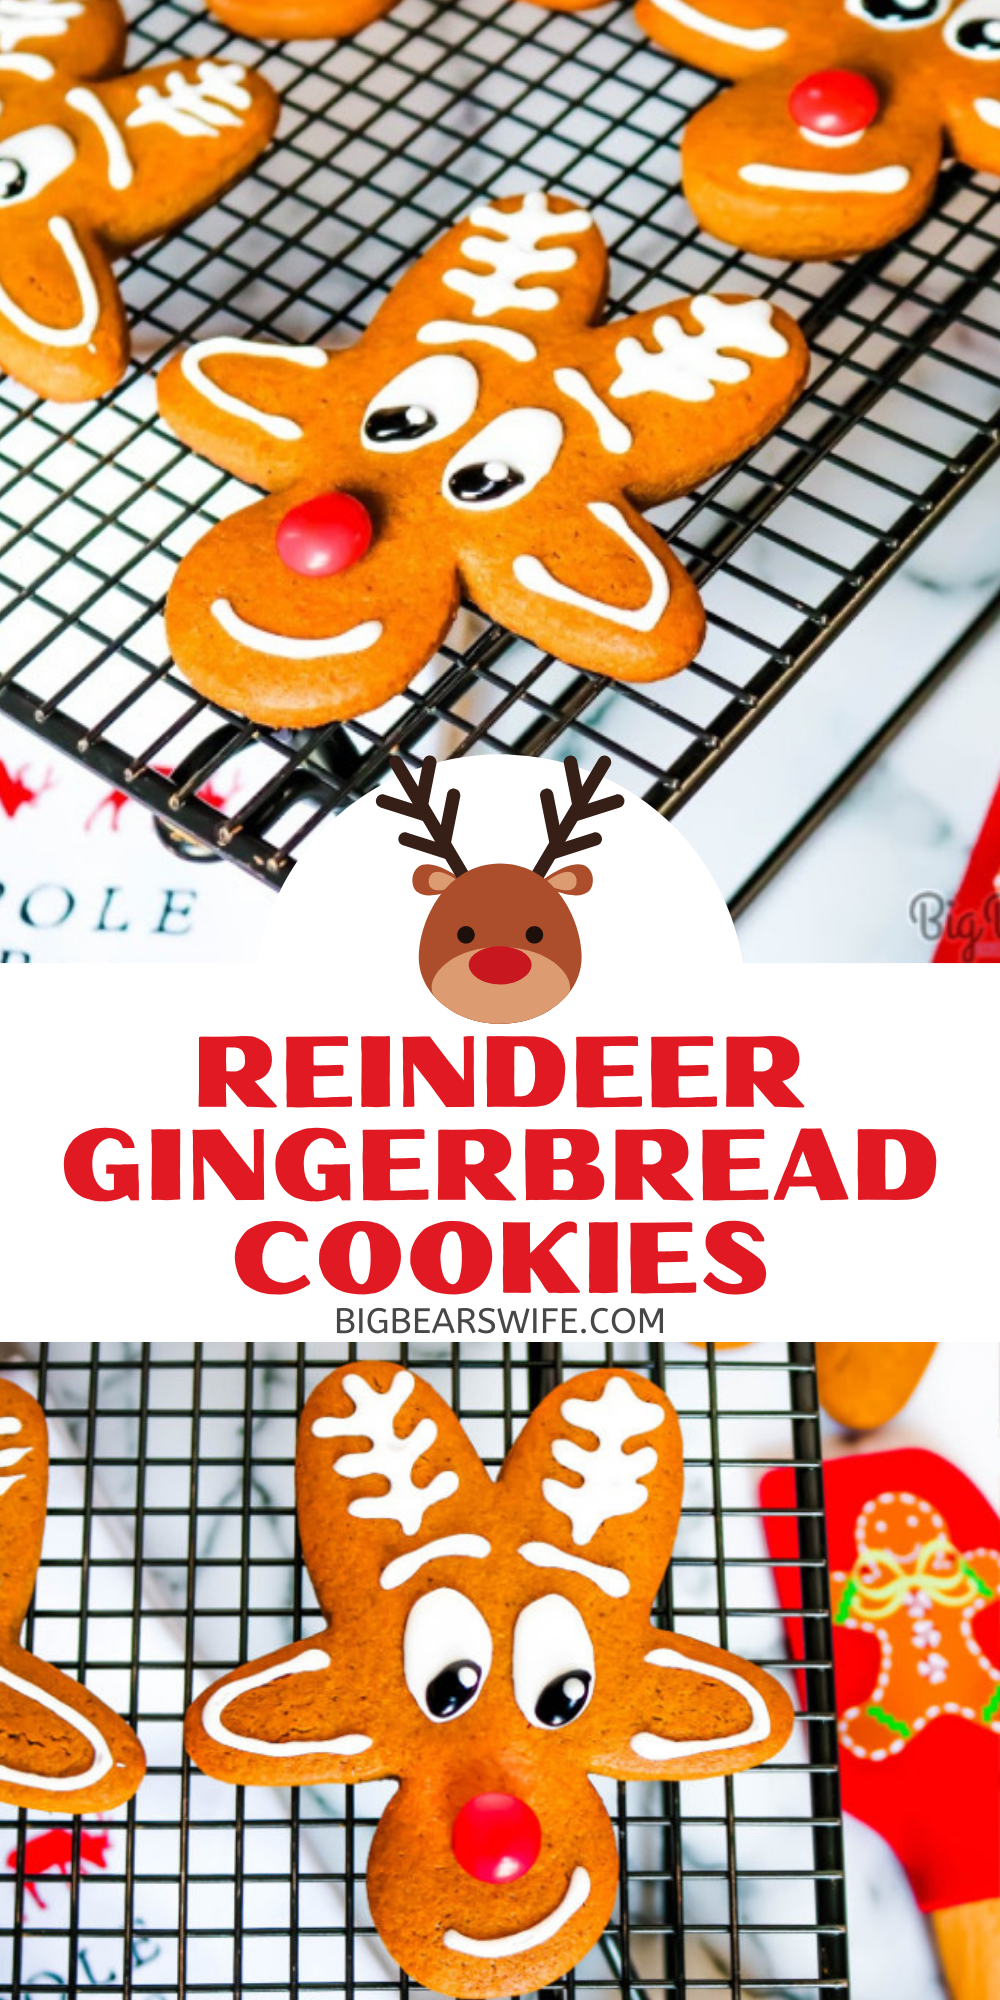 These adorable Reindeer Gingerbread Cookies are made using an upside down gingerbread man cookie cutter, royal icing and a red chocolate candy for the nose!